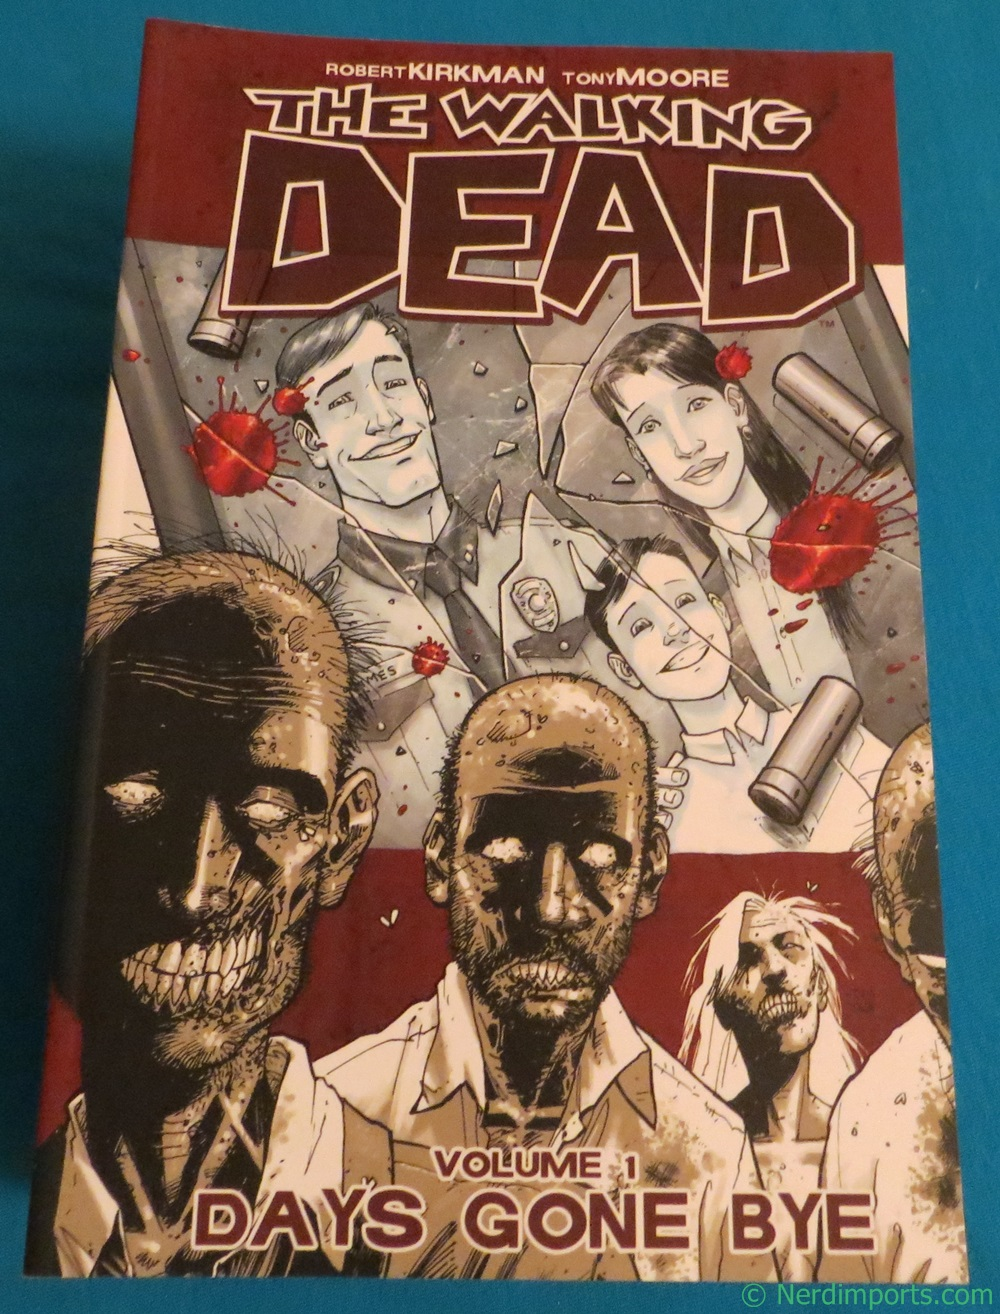 The Walking Dead Vol. 1 Days Gone Bye